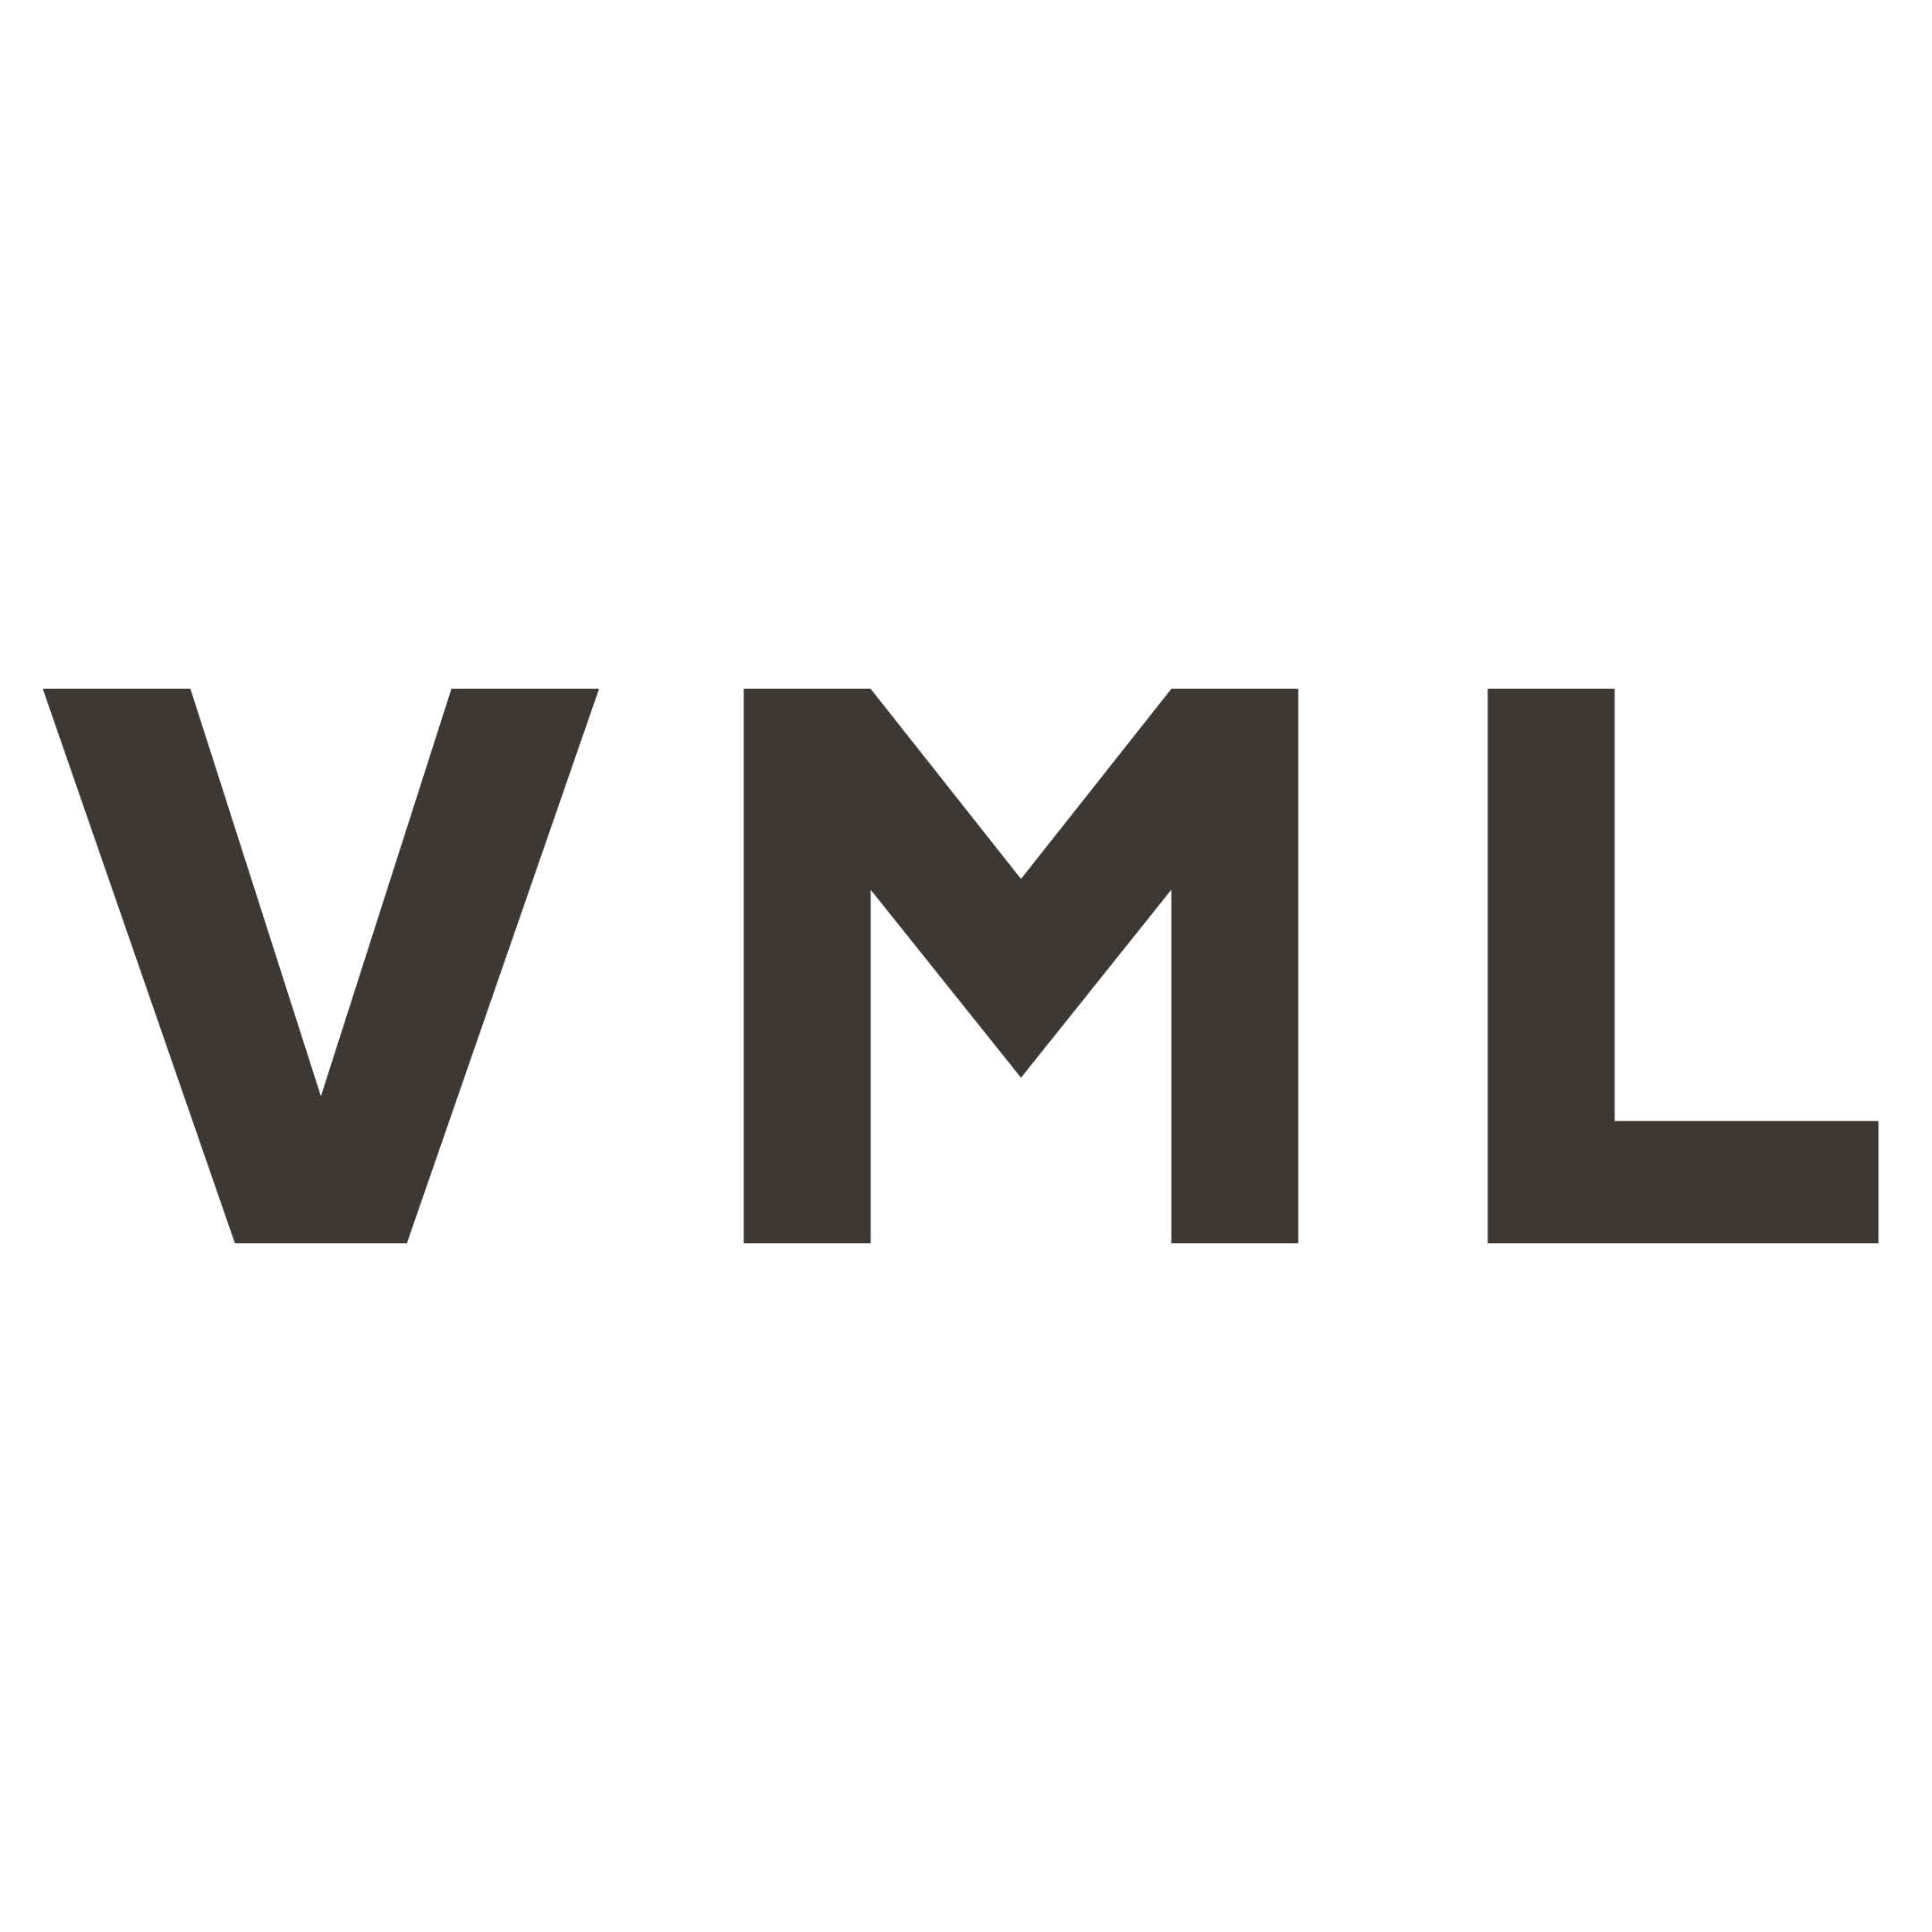 Fashion Retailer Express, Inc. Selects VML as Agency of Record